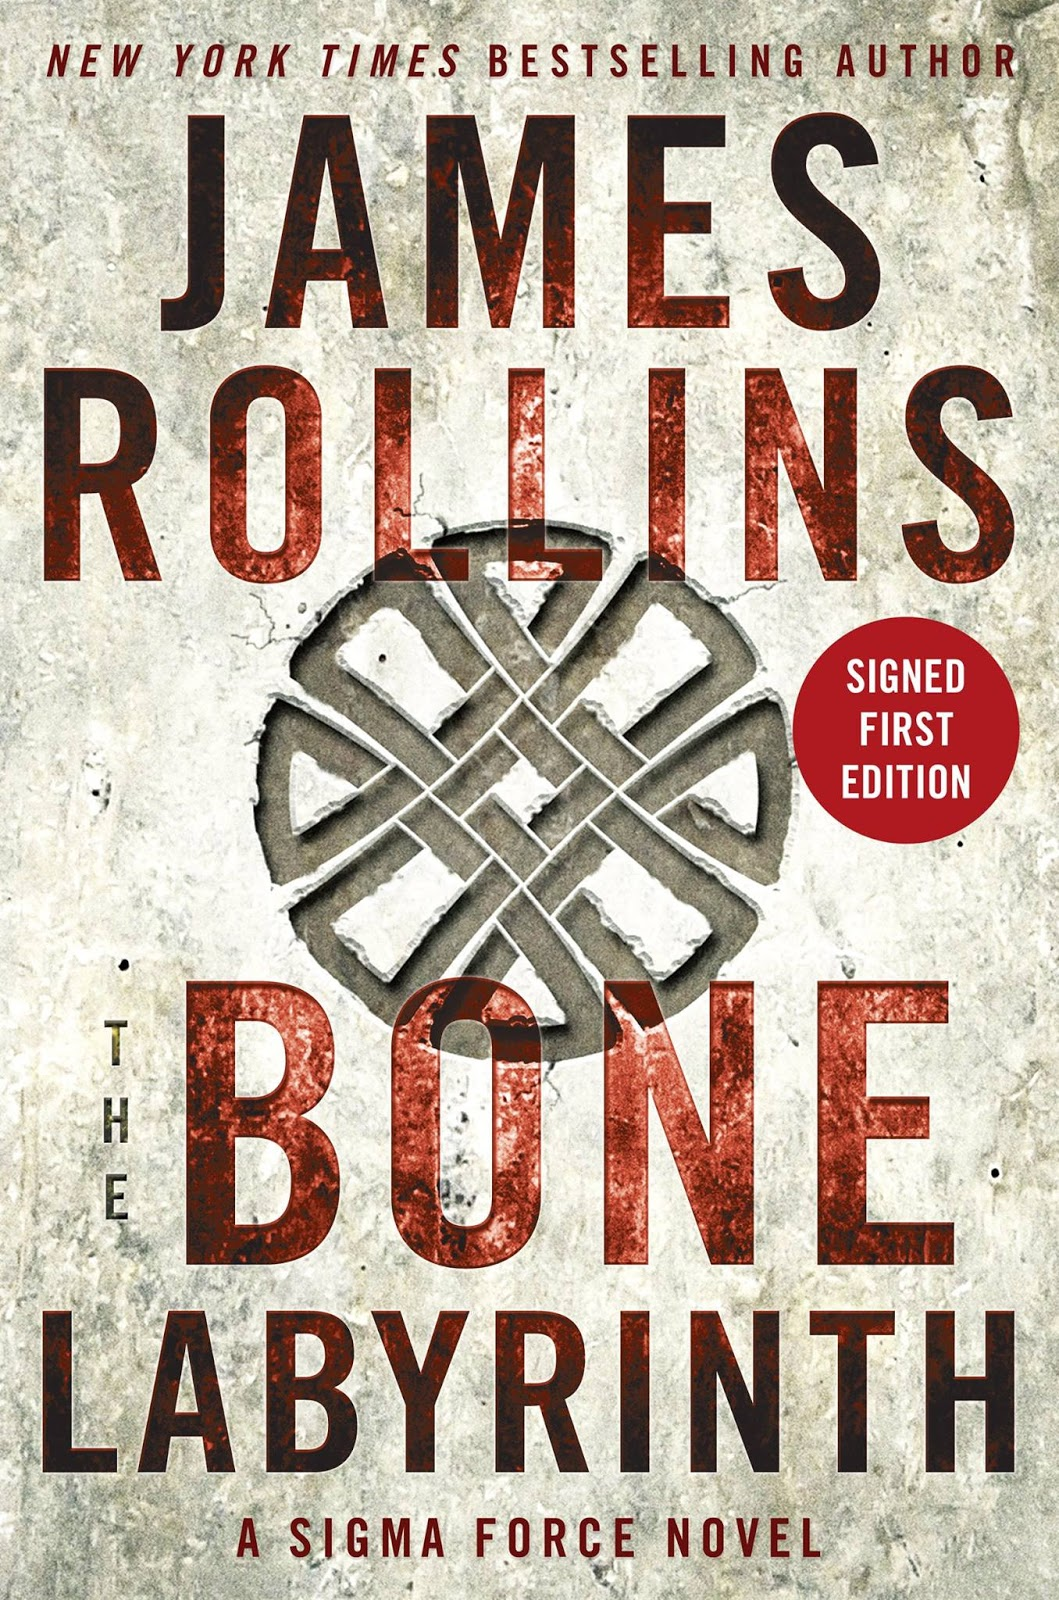 The Bone Labyrinth: A Sigma Force Novel by James Rollins